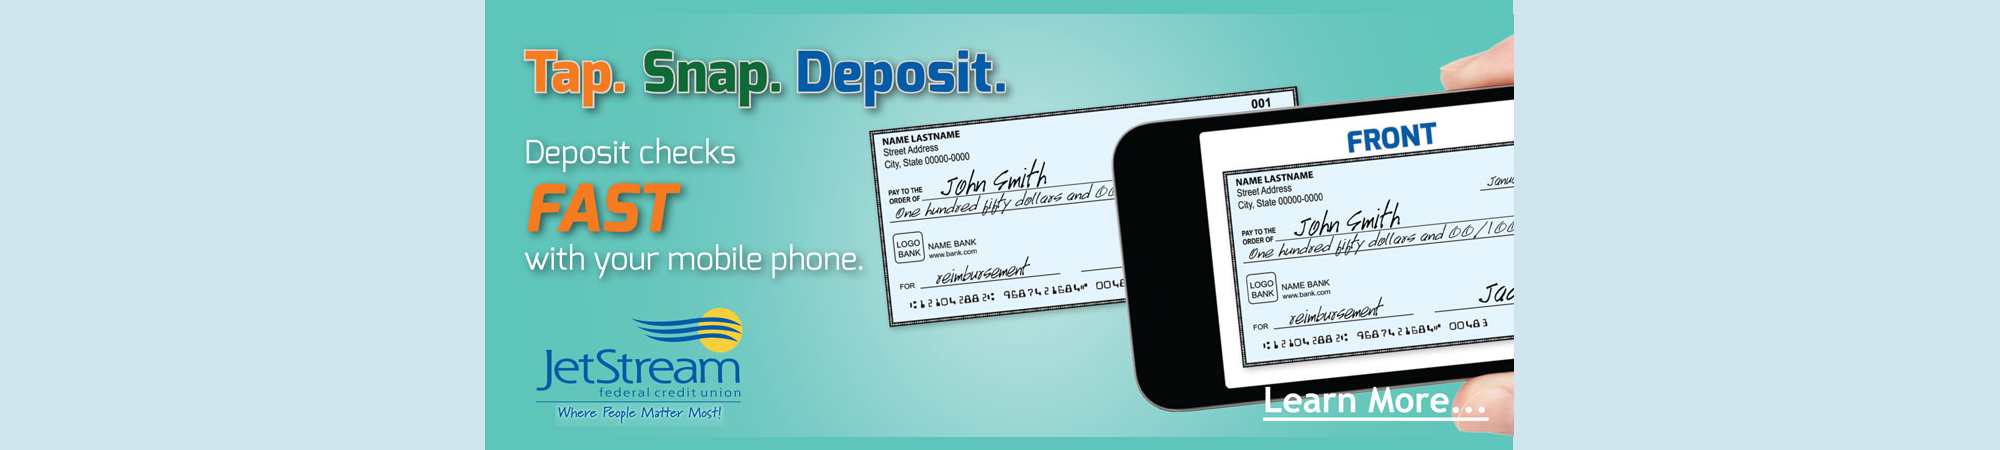 Deposit checks fast with your mobile phone.